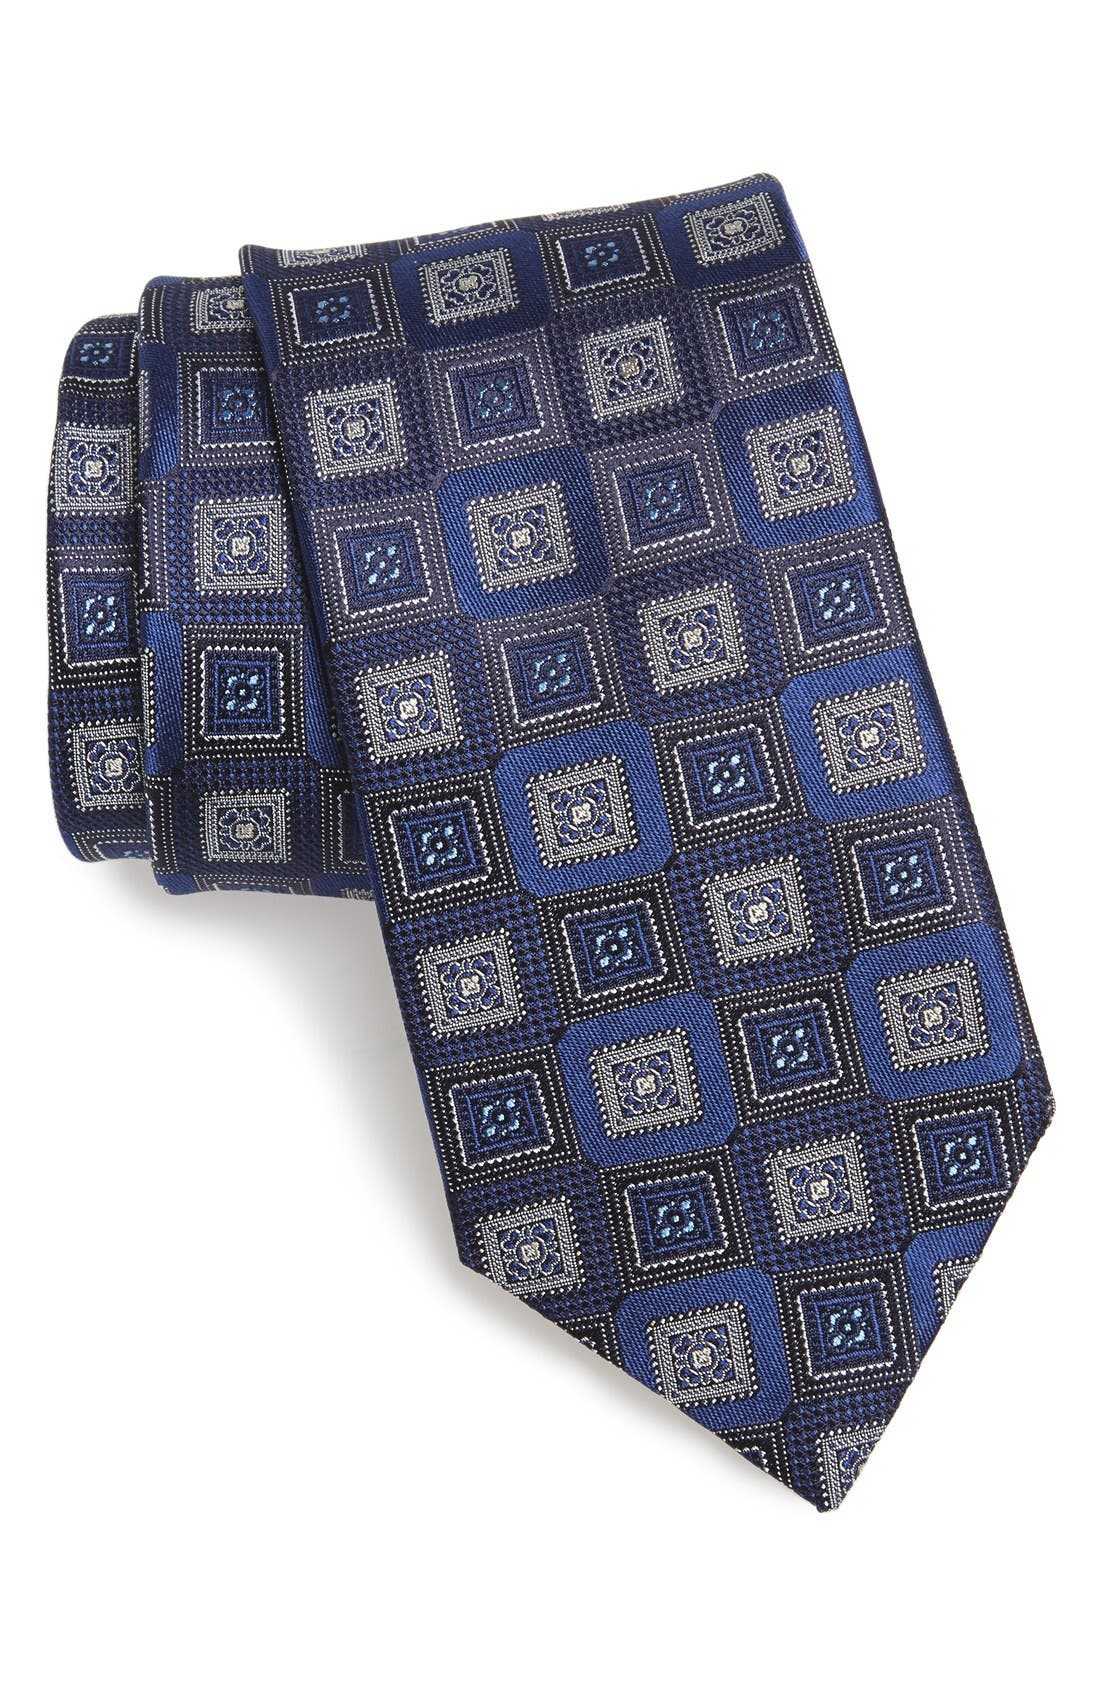 'Slash' Medallion Silk Tie,                             Main thumbnail 1, color,                             Navy